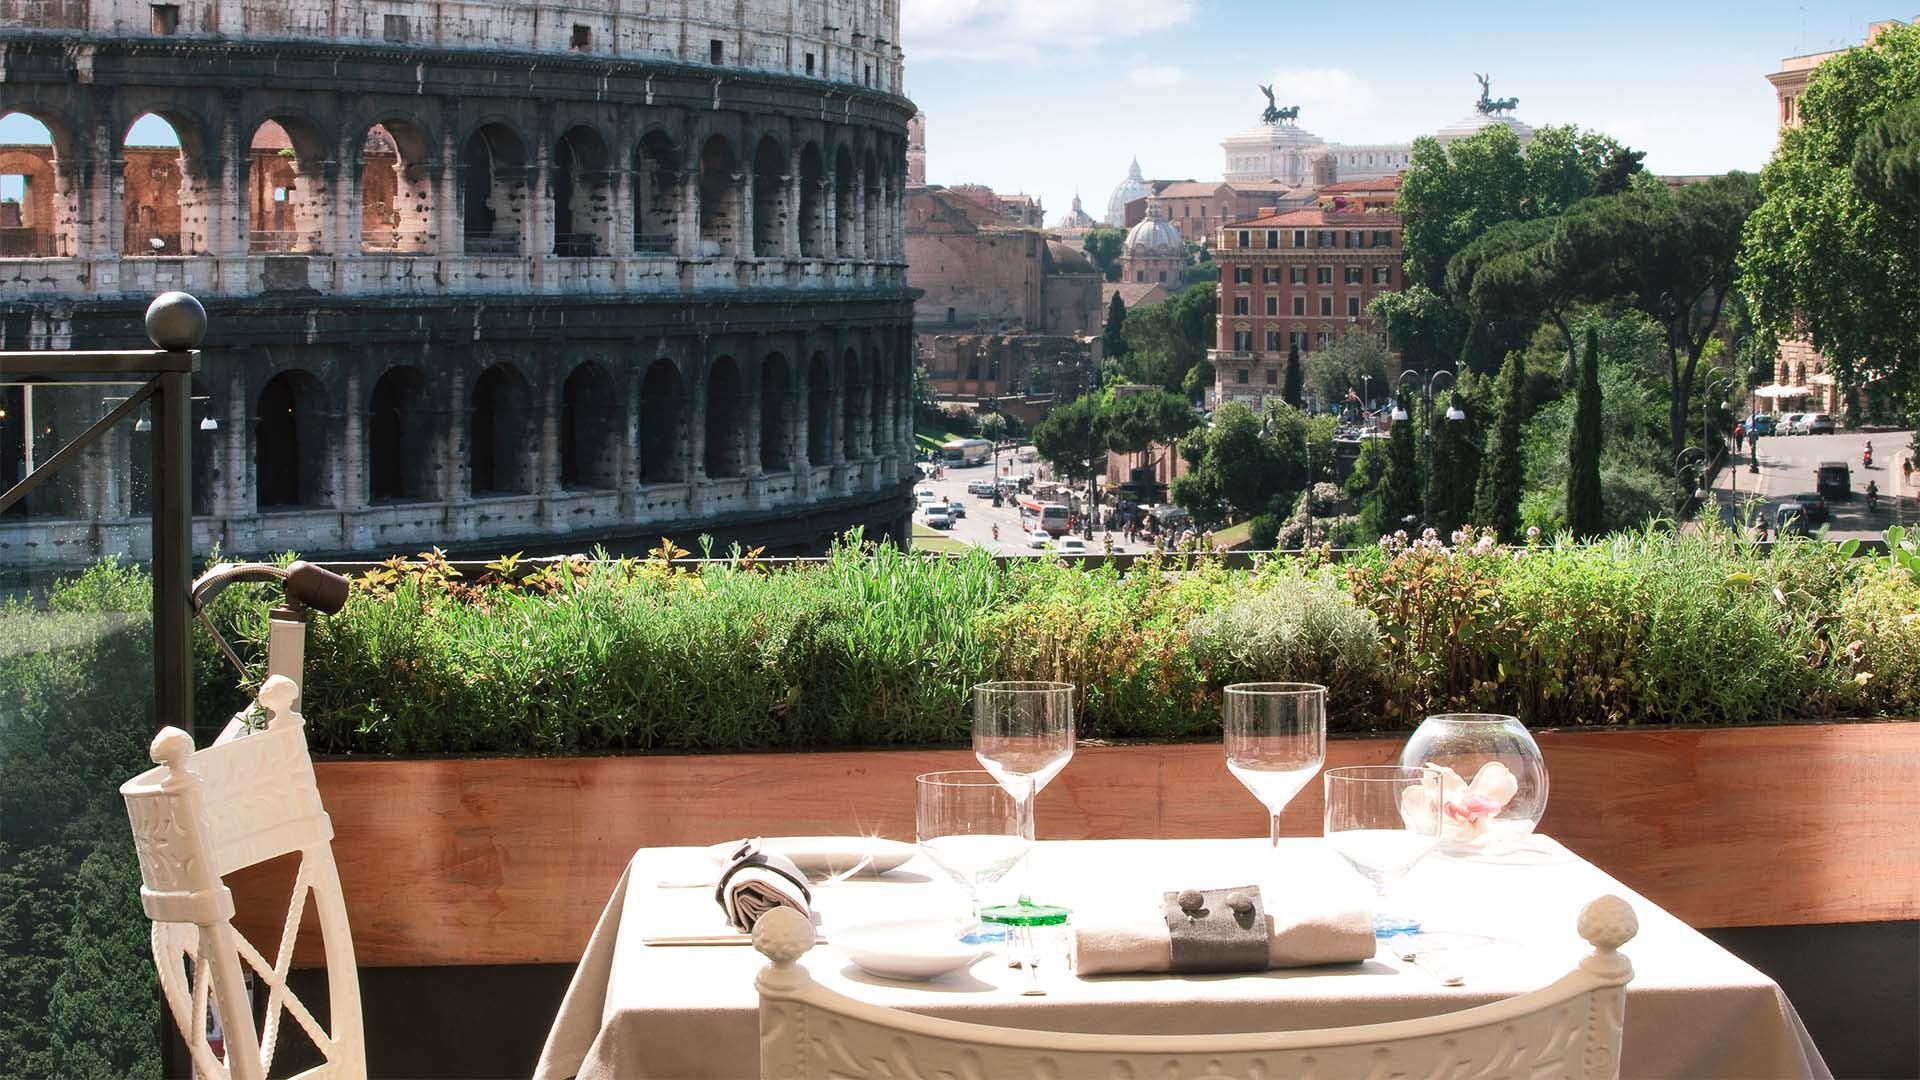 Colosseum view at Aroma restaurant, Rome